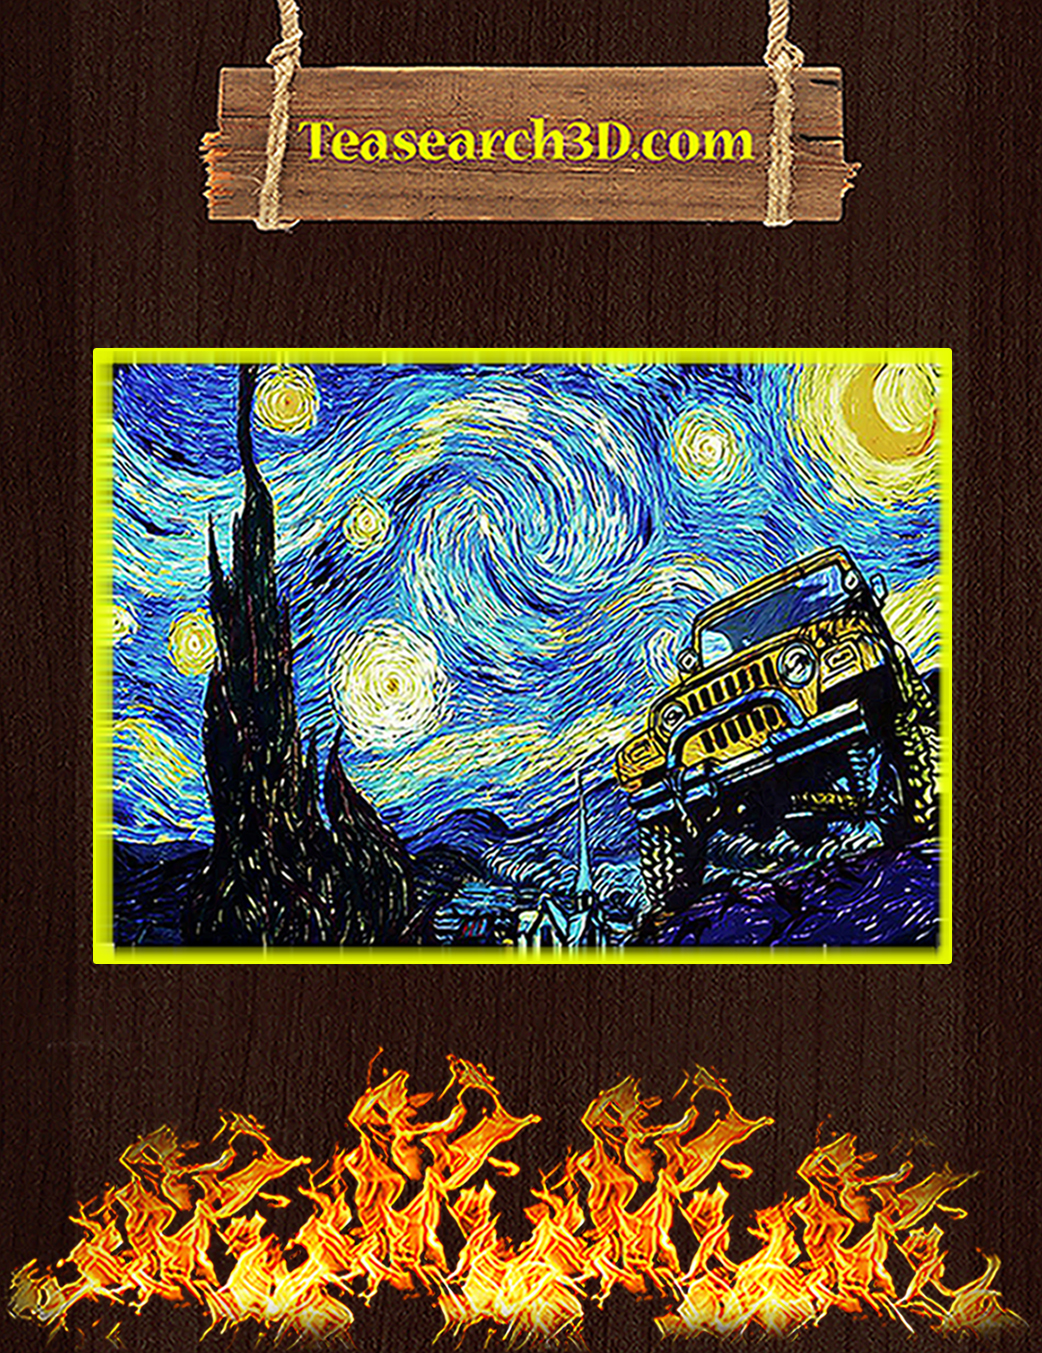 Jeep starry night van gogh poster A1